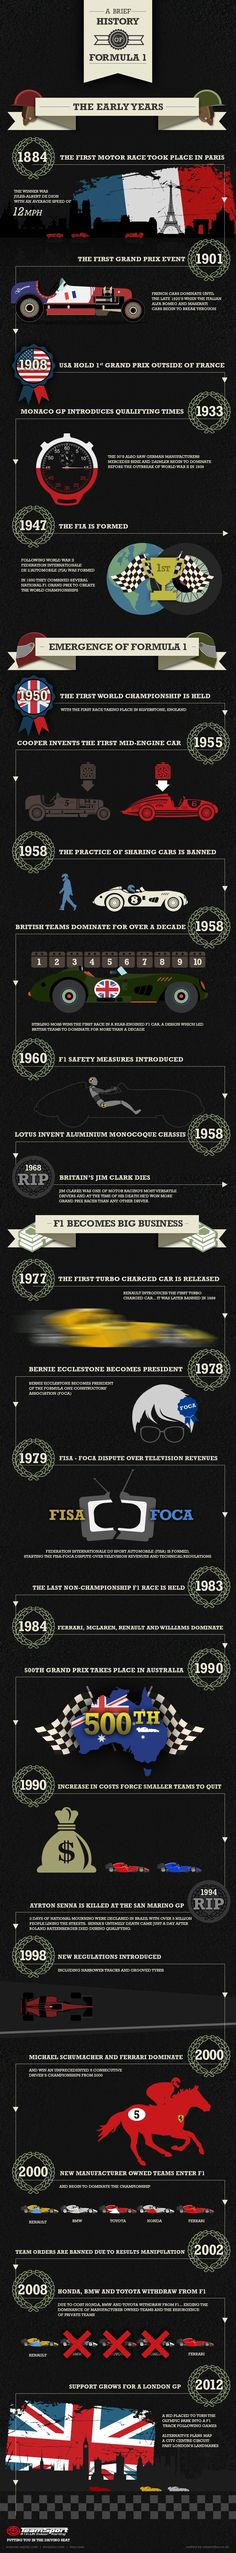 History of Formula 1 Infographic